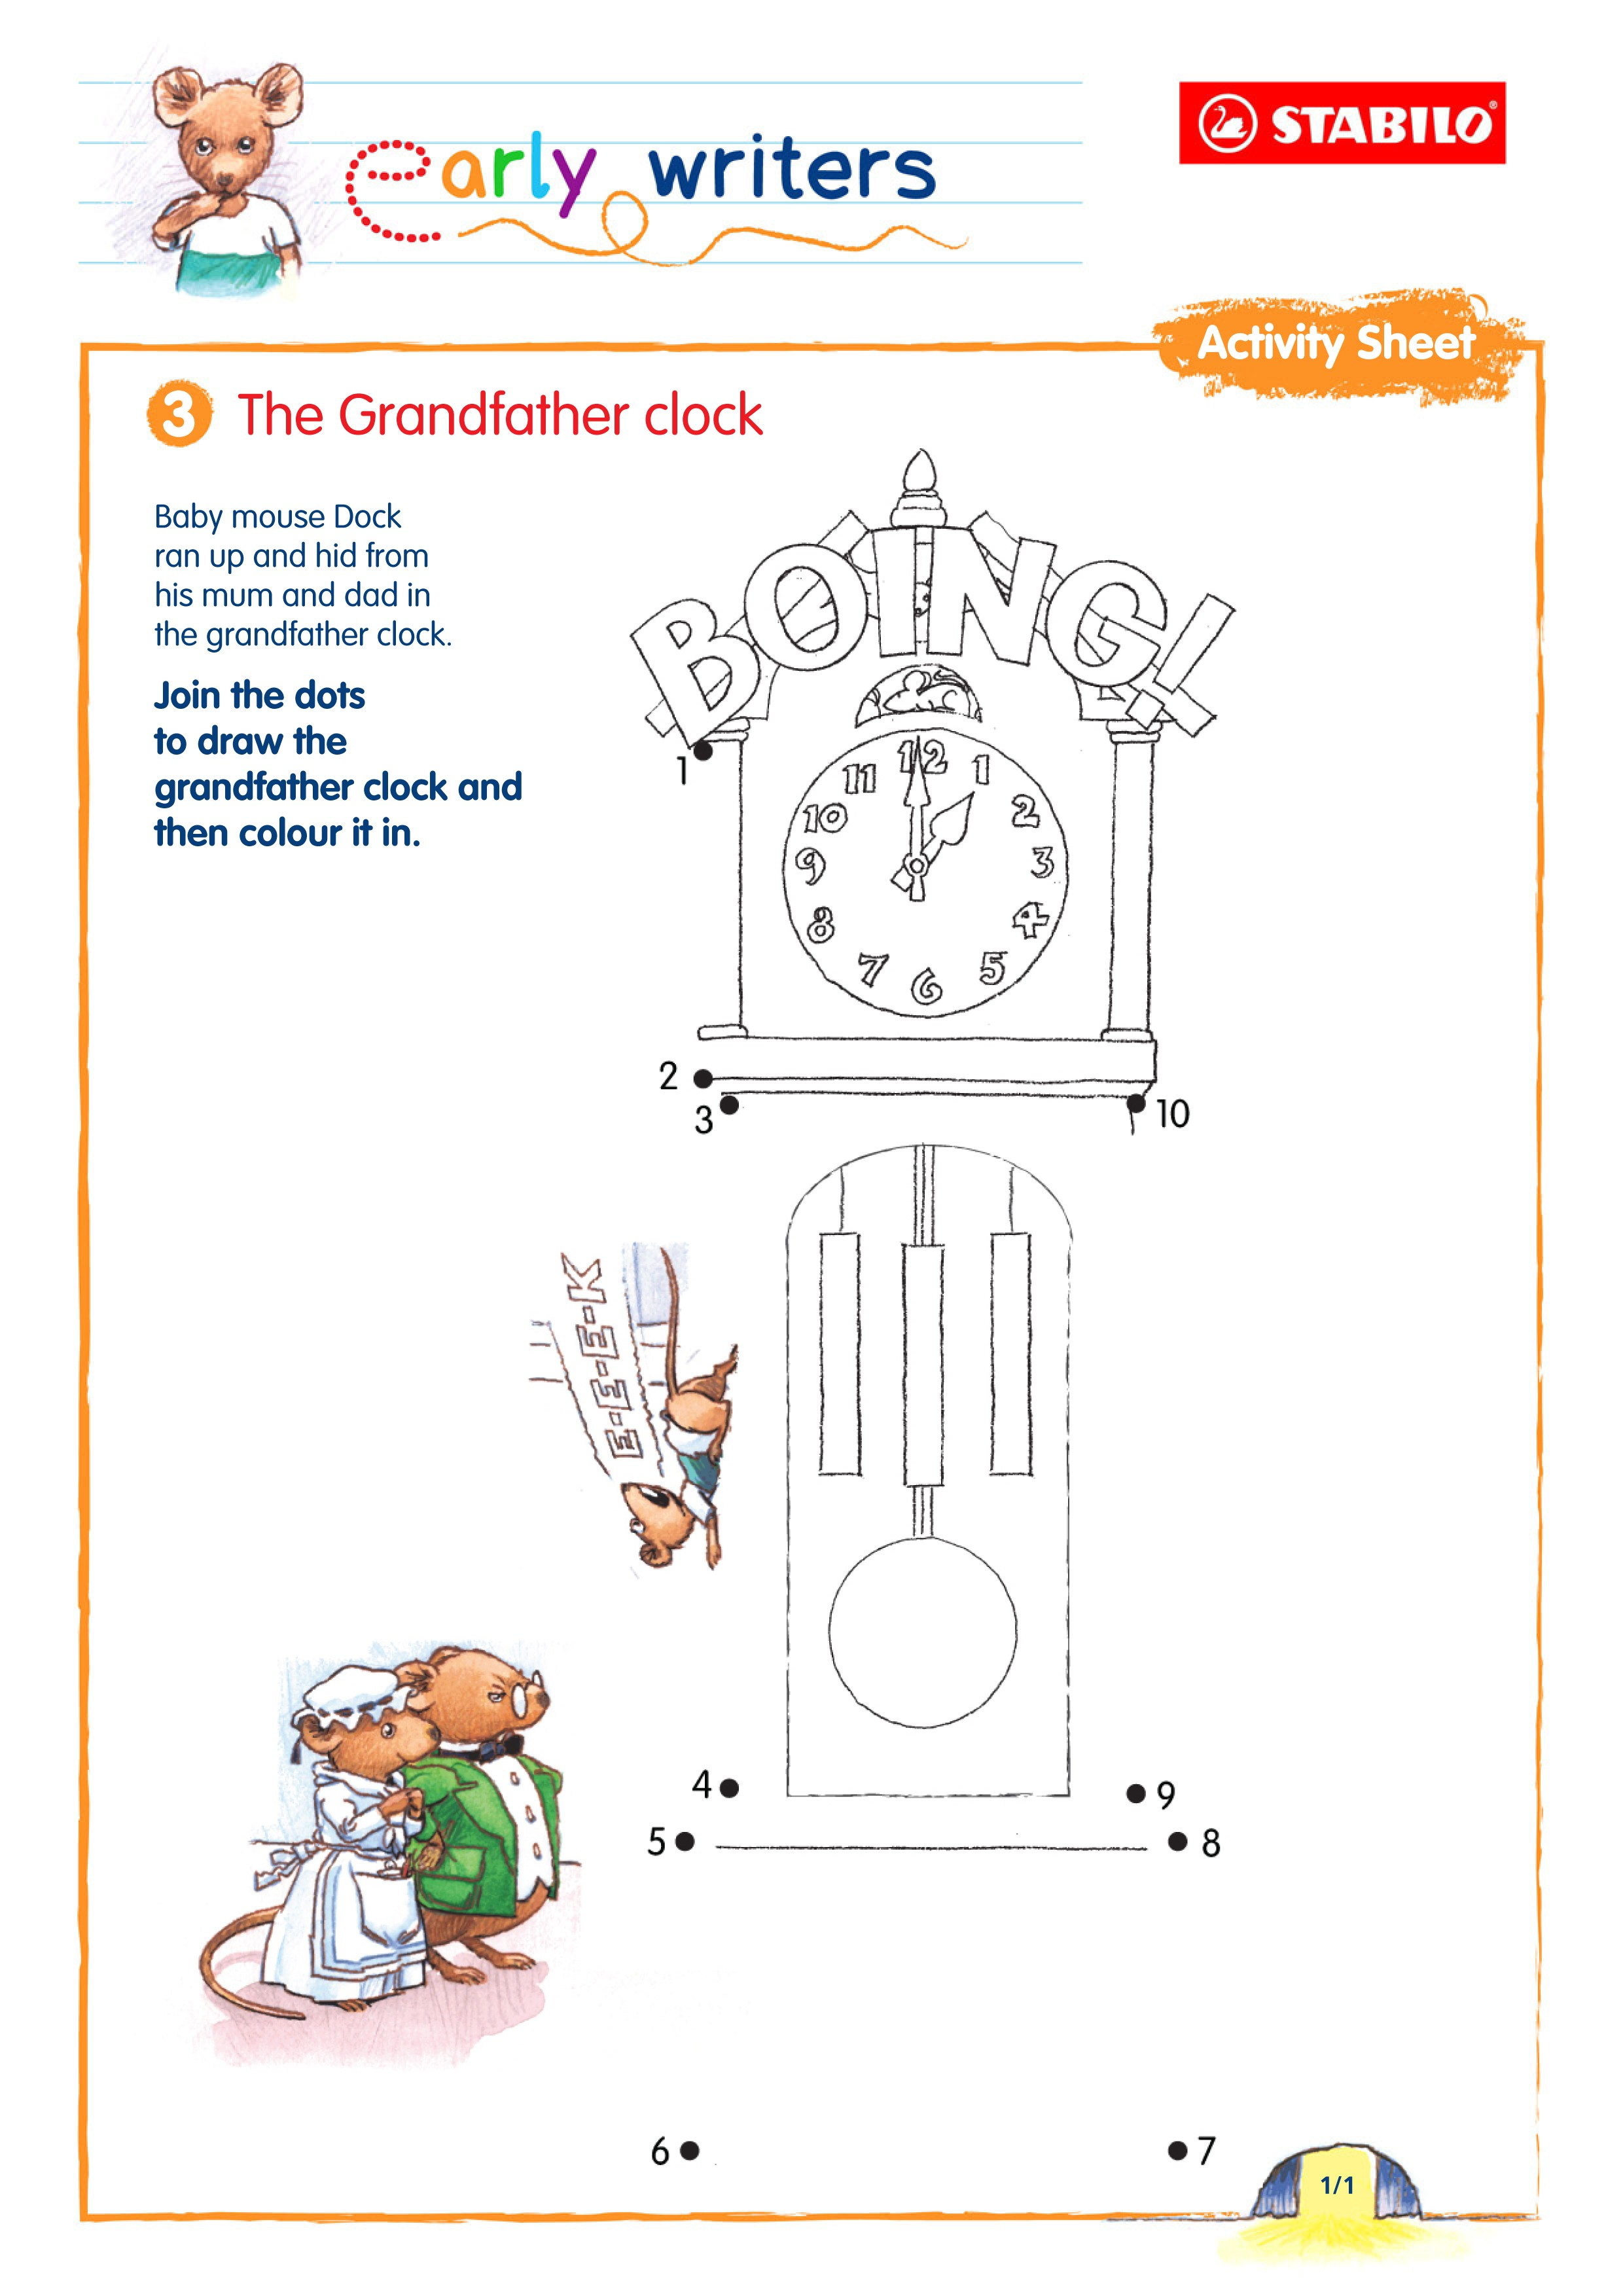 free-early-writing-activity-sheets-to-print-out_50492